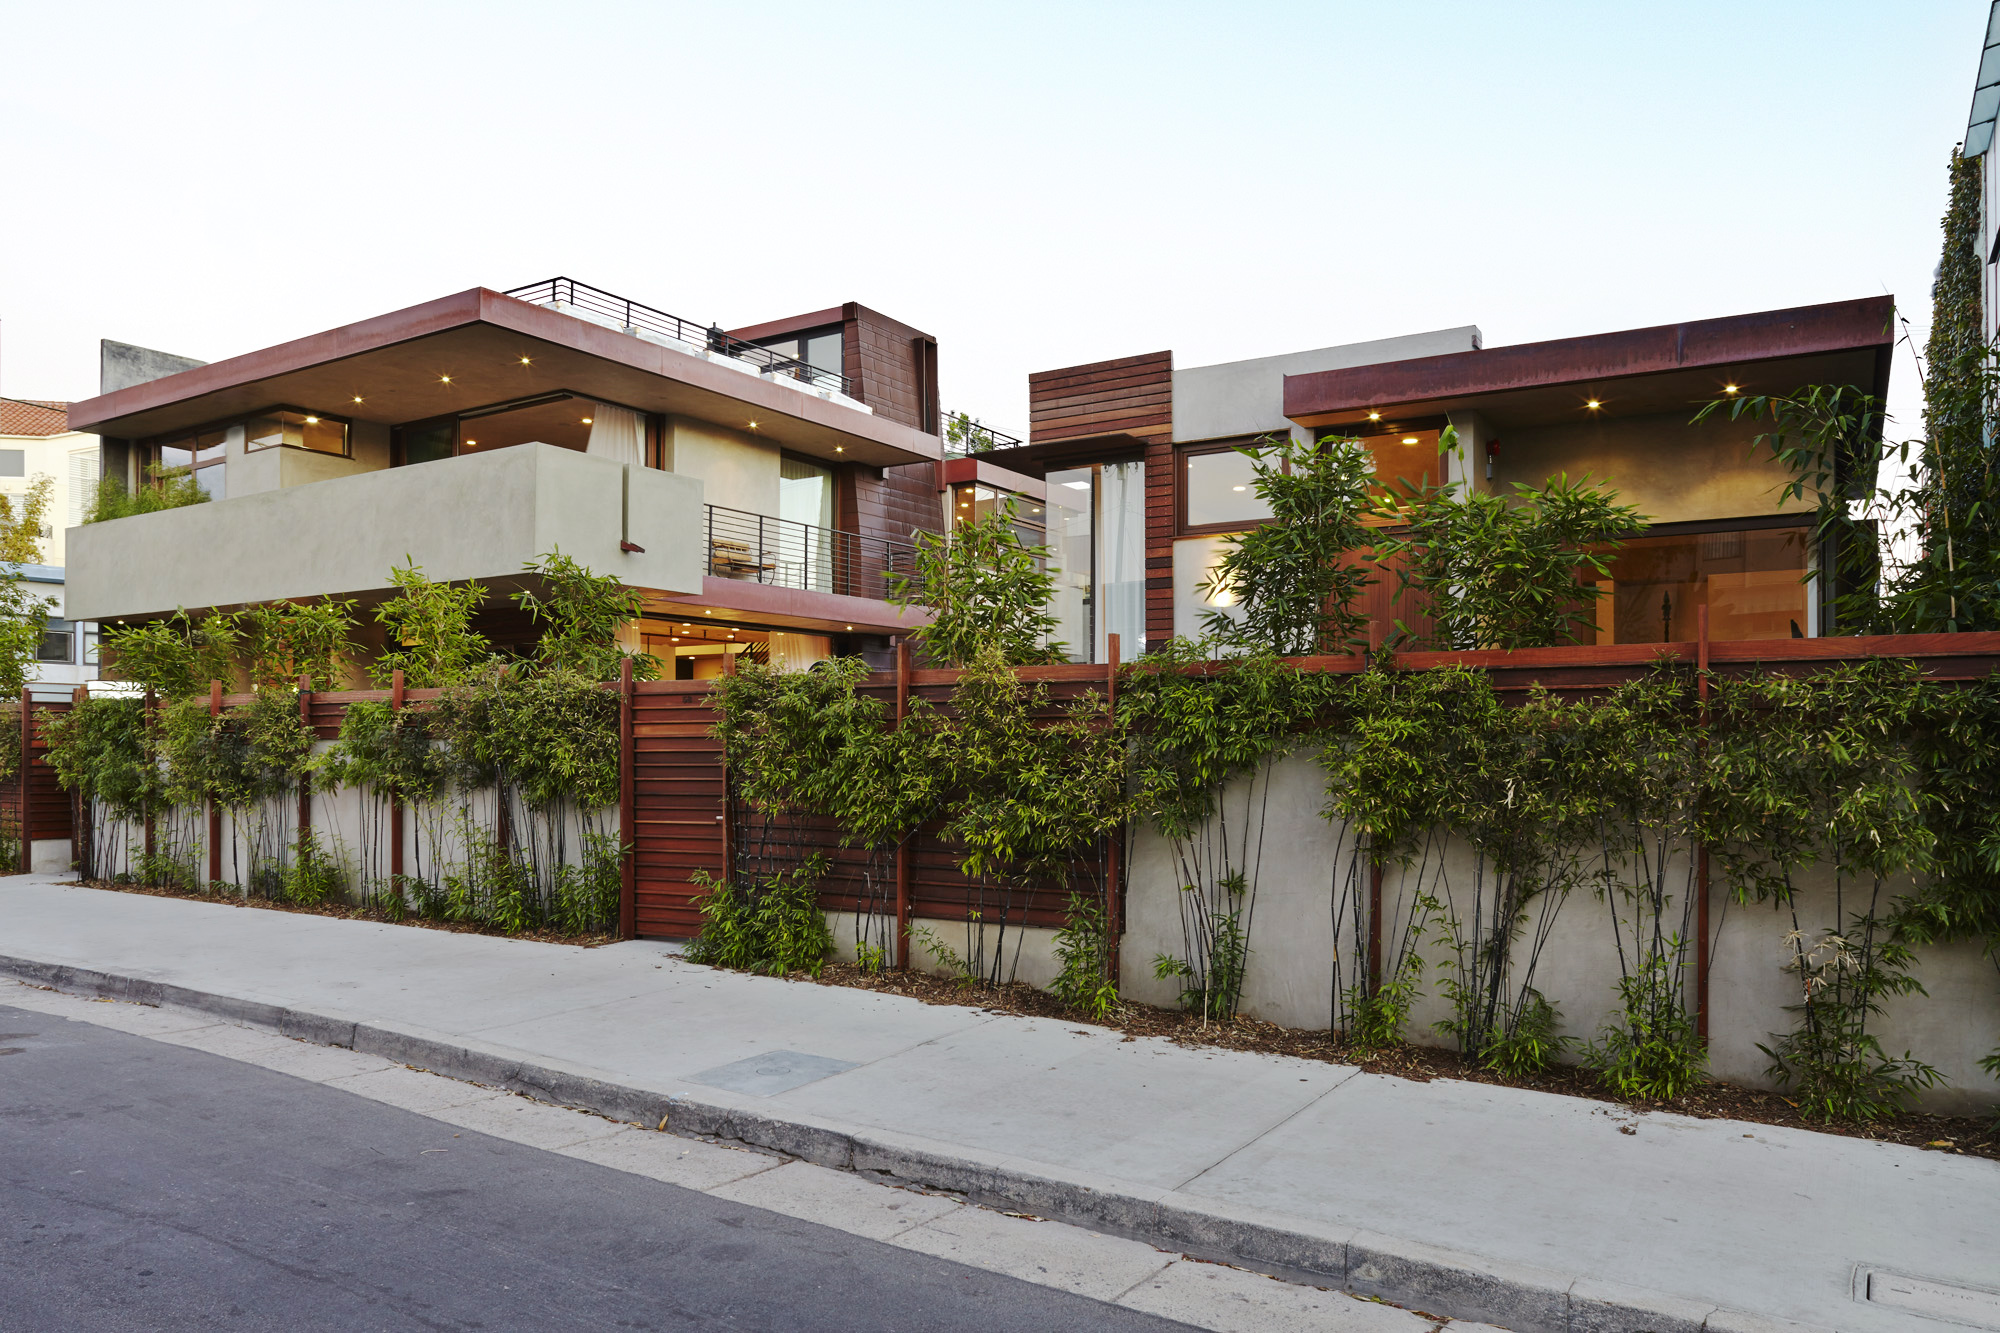 Exterior of house in Venice, CA